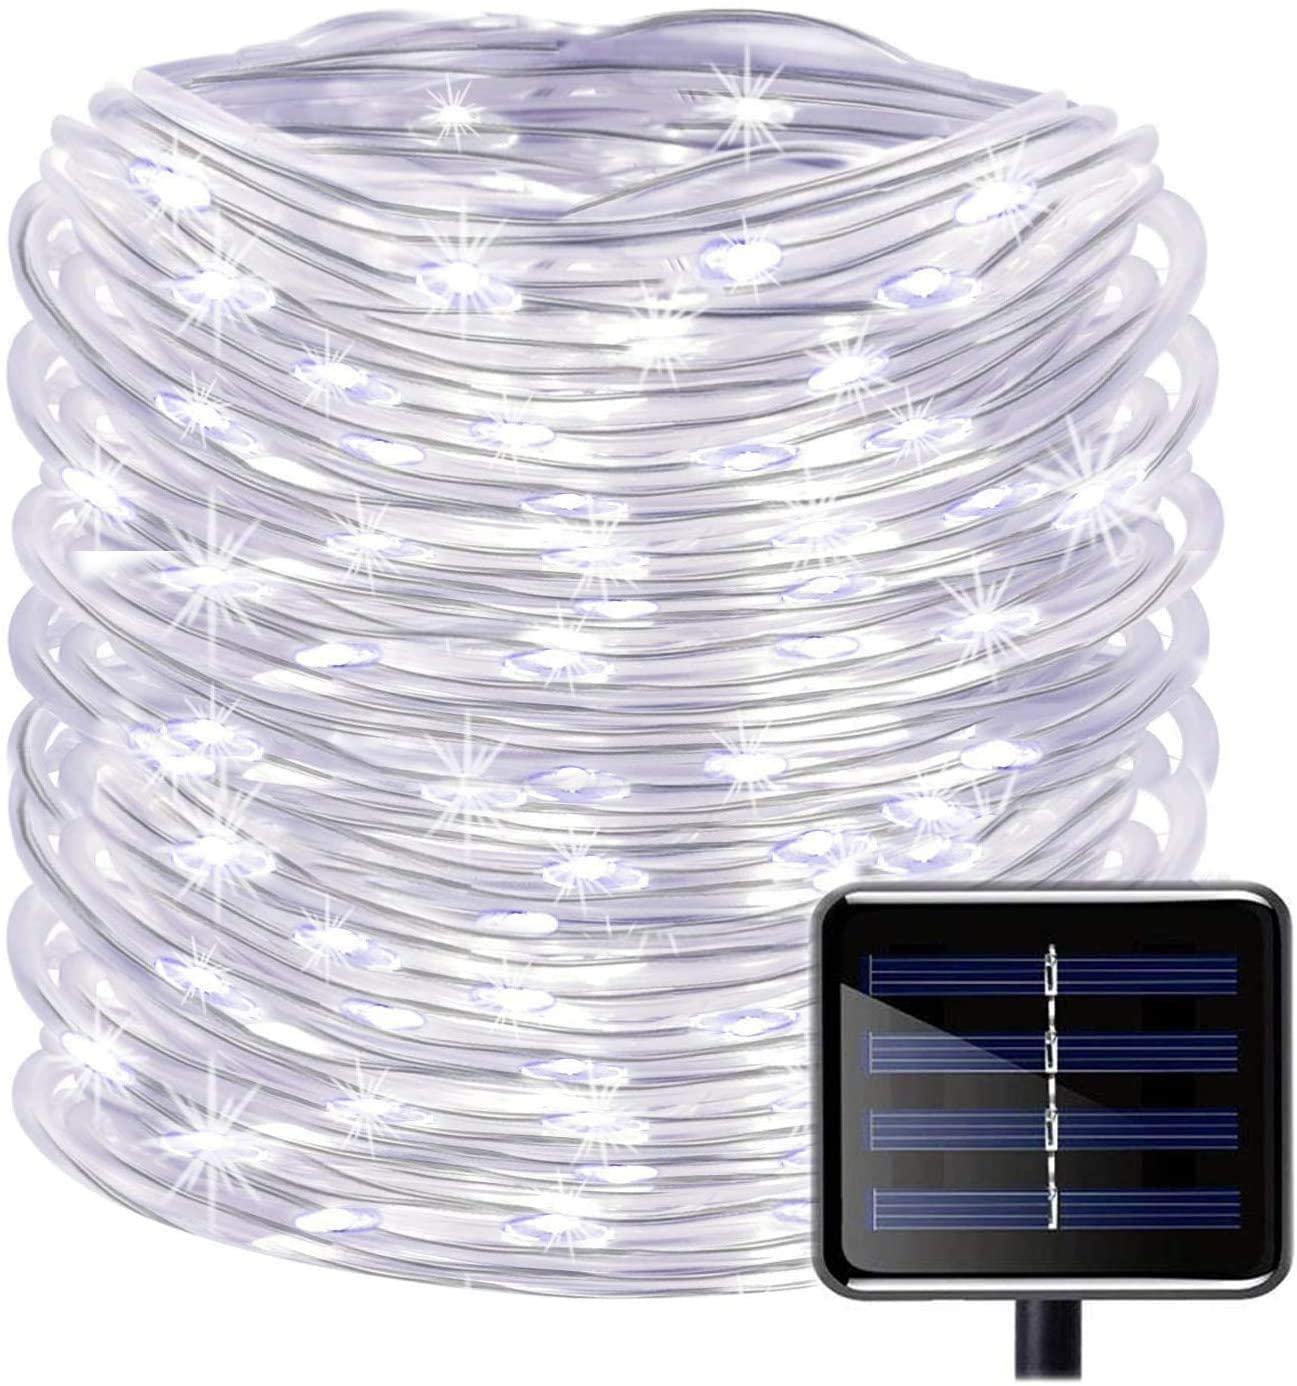 SUNSEATON Solar Rope Lights,100 LEDs 33ft/10M Waterproof Solar String Copper Wire Light,Outdoor Rope Lights for Garden Yard Path Fence Tree Wedding Party Decorative (White, 8 Modes)